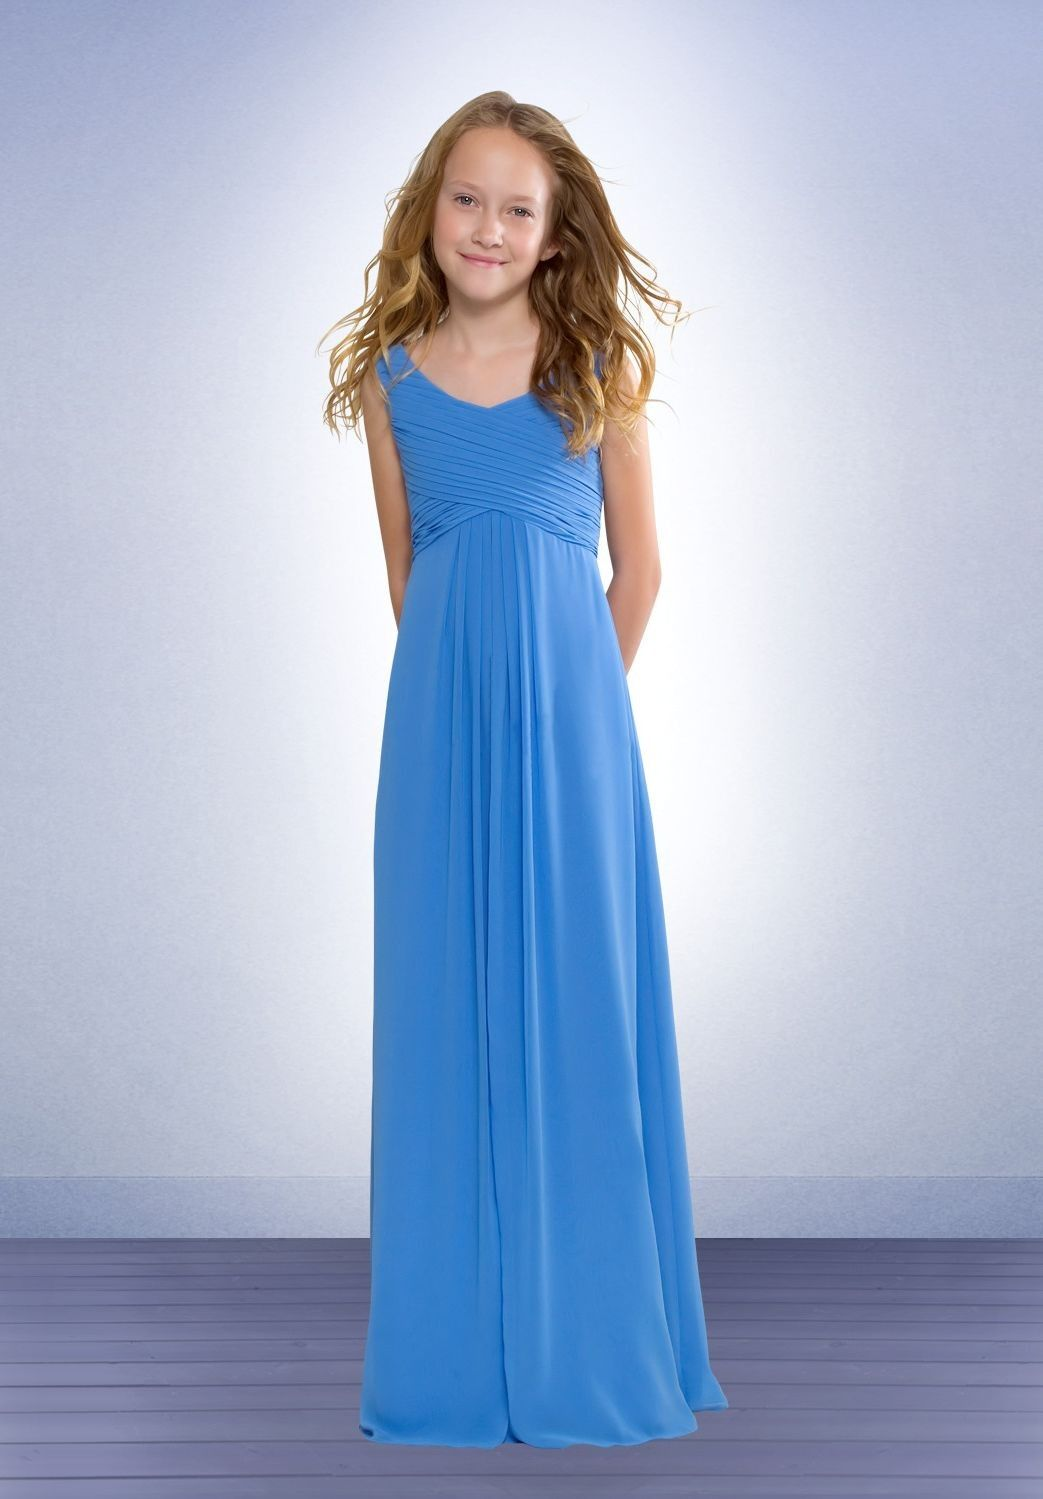 1000  images about Junior Bridesmaid Dresses on Pinterest  Junior ...